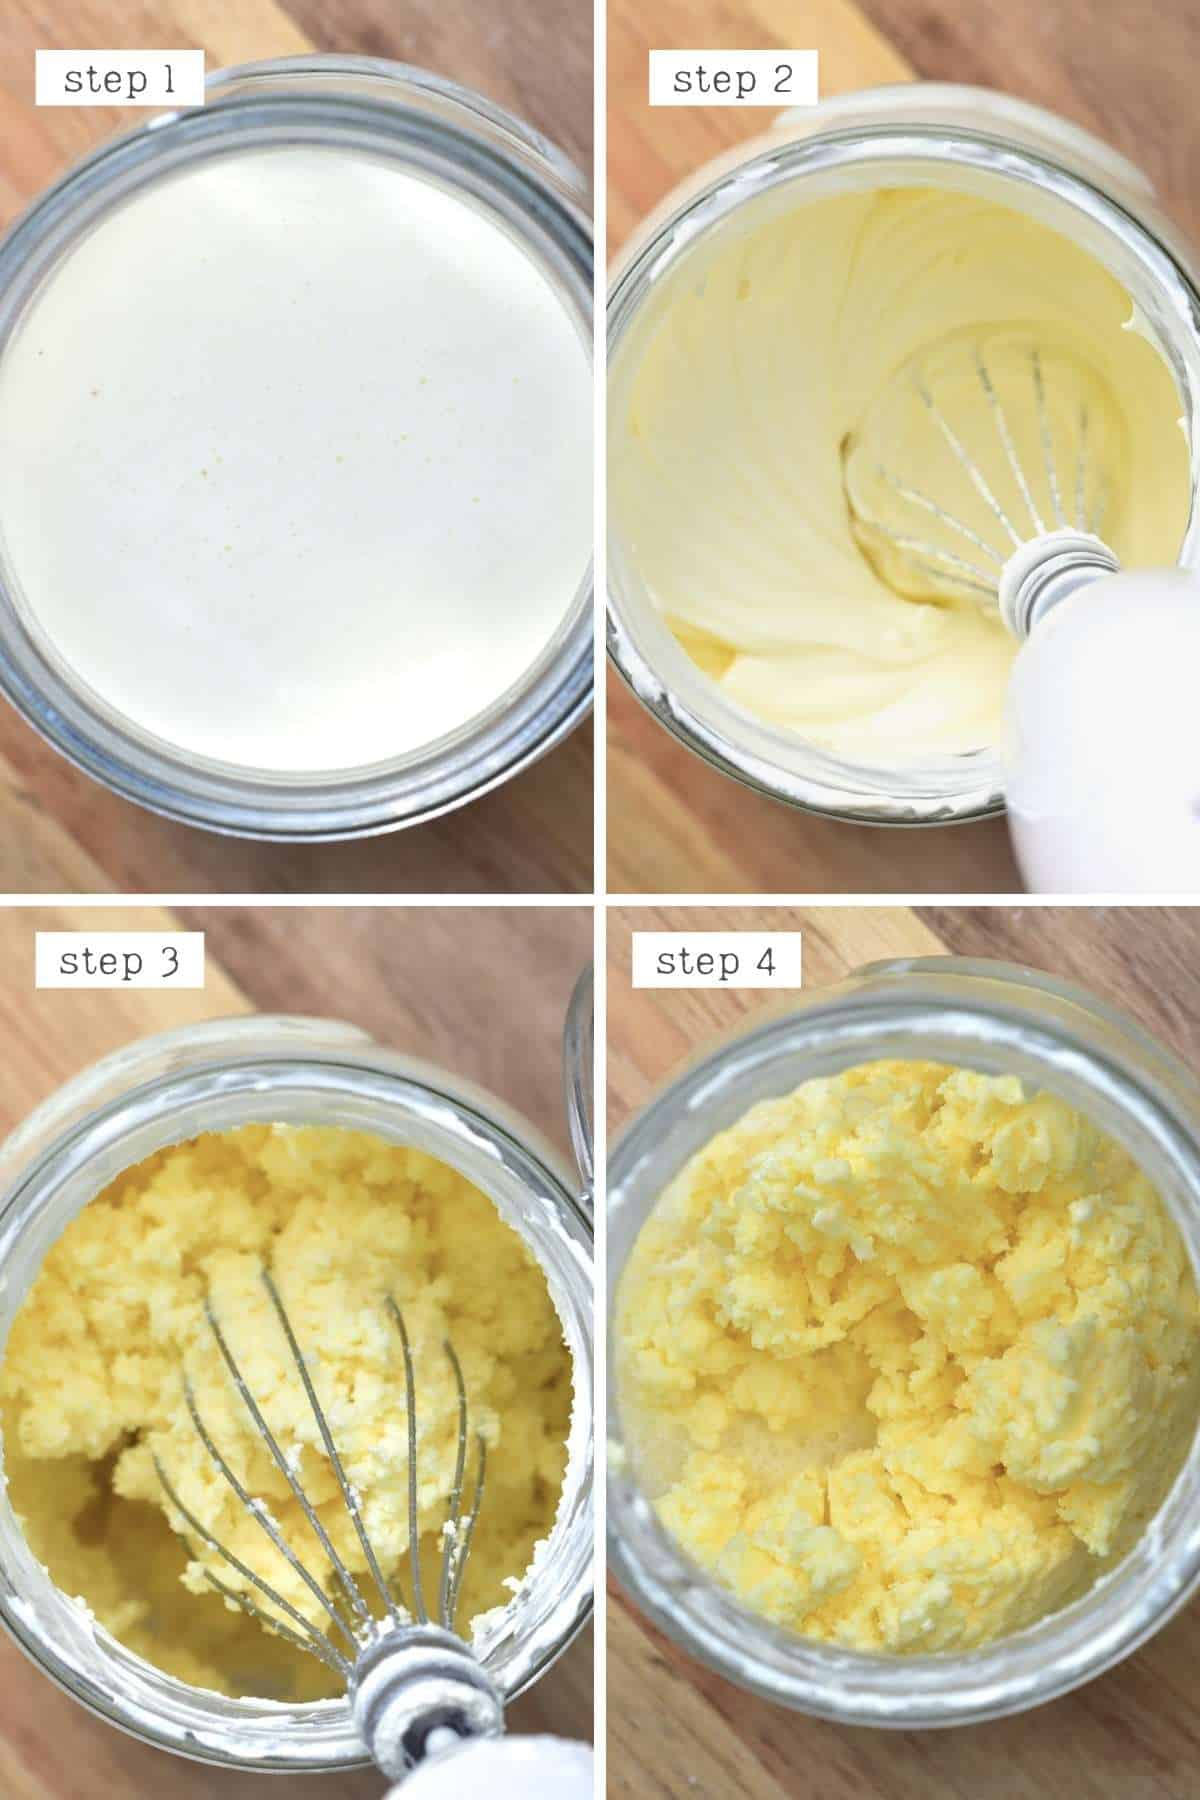 Steps for making butter from cream